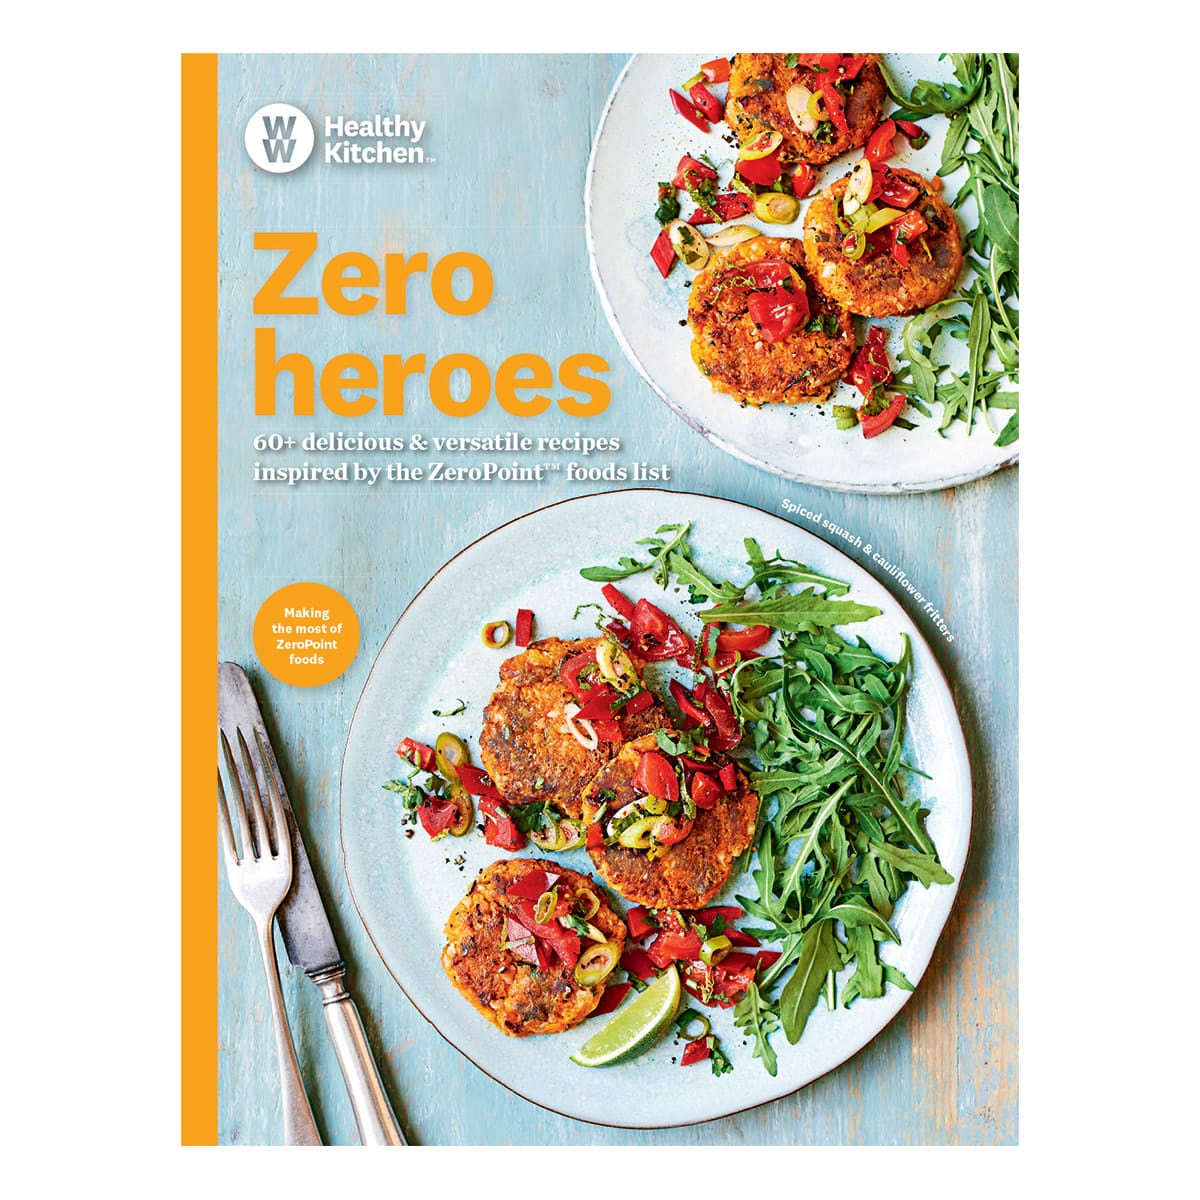 WW Zero Heroes Cookbook, tasty, healthy meals from scratch, 60+ clever recipe using ZeroPoints foods, breakfasts, lunches, dinners, desserts and snacks